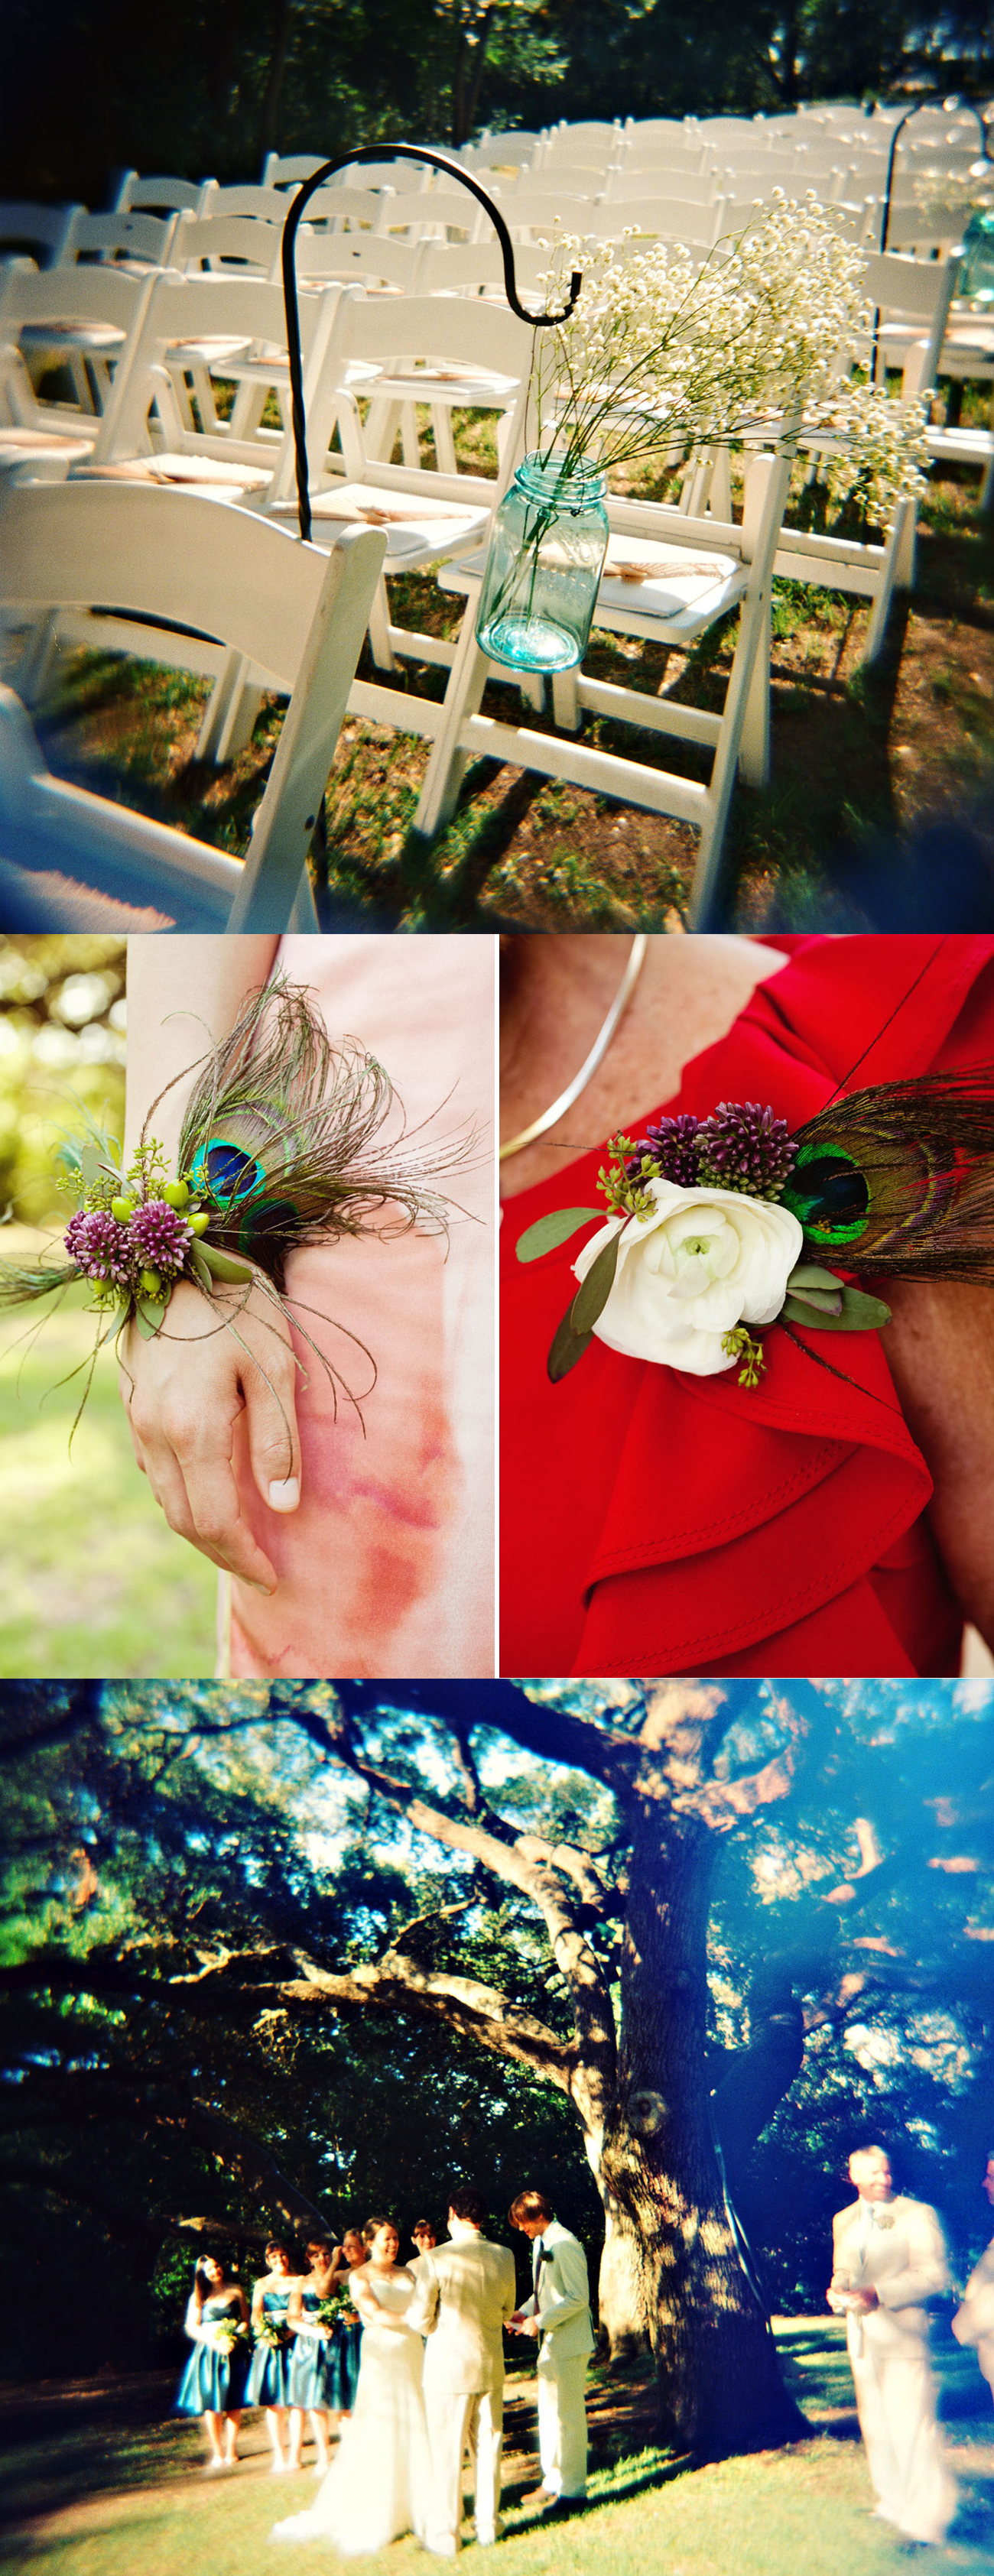 All photos tagged 'outdoor wedding' | OneWed.